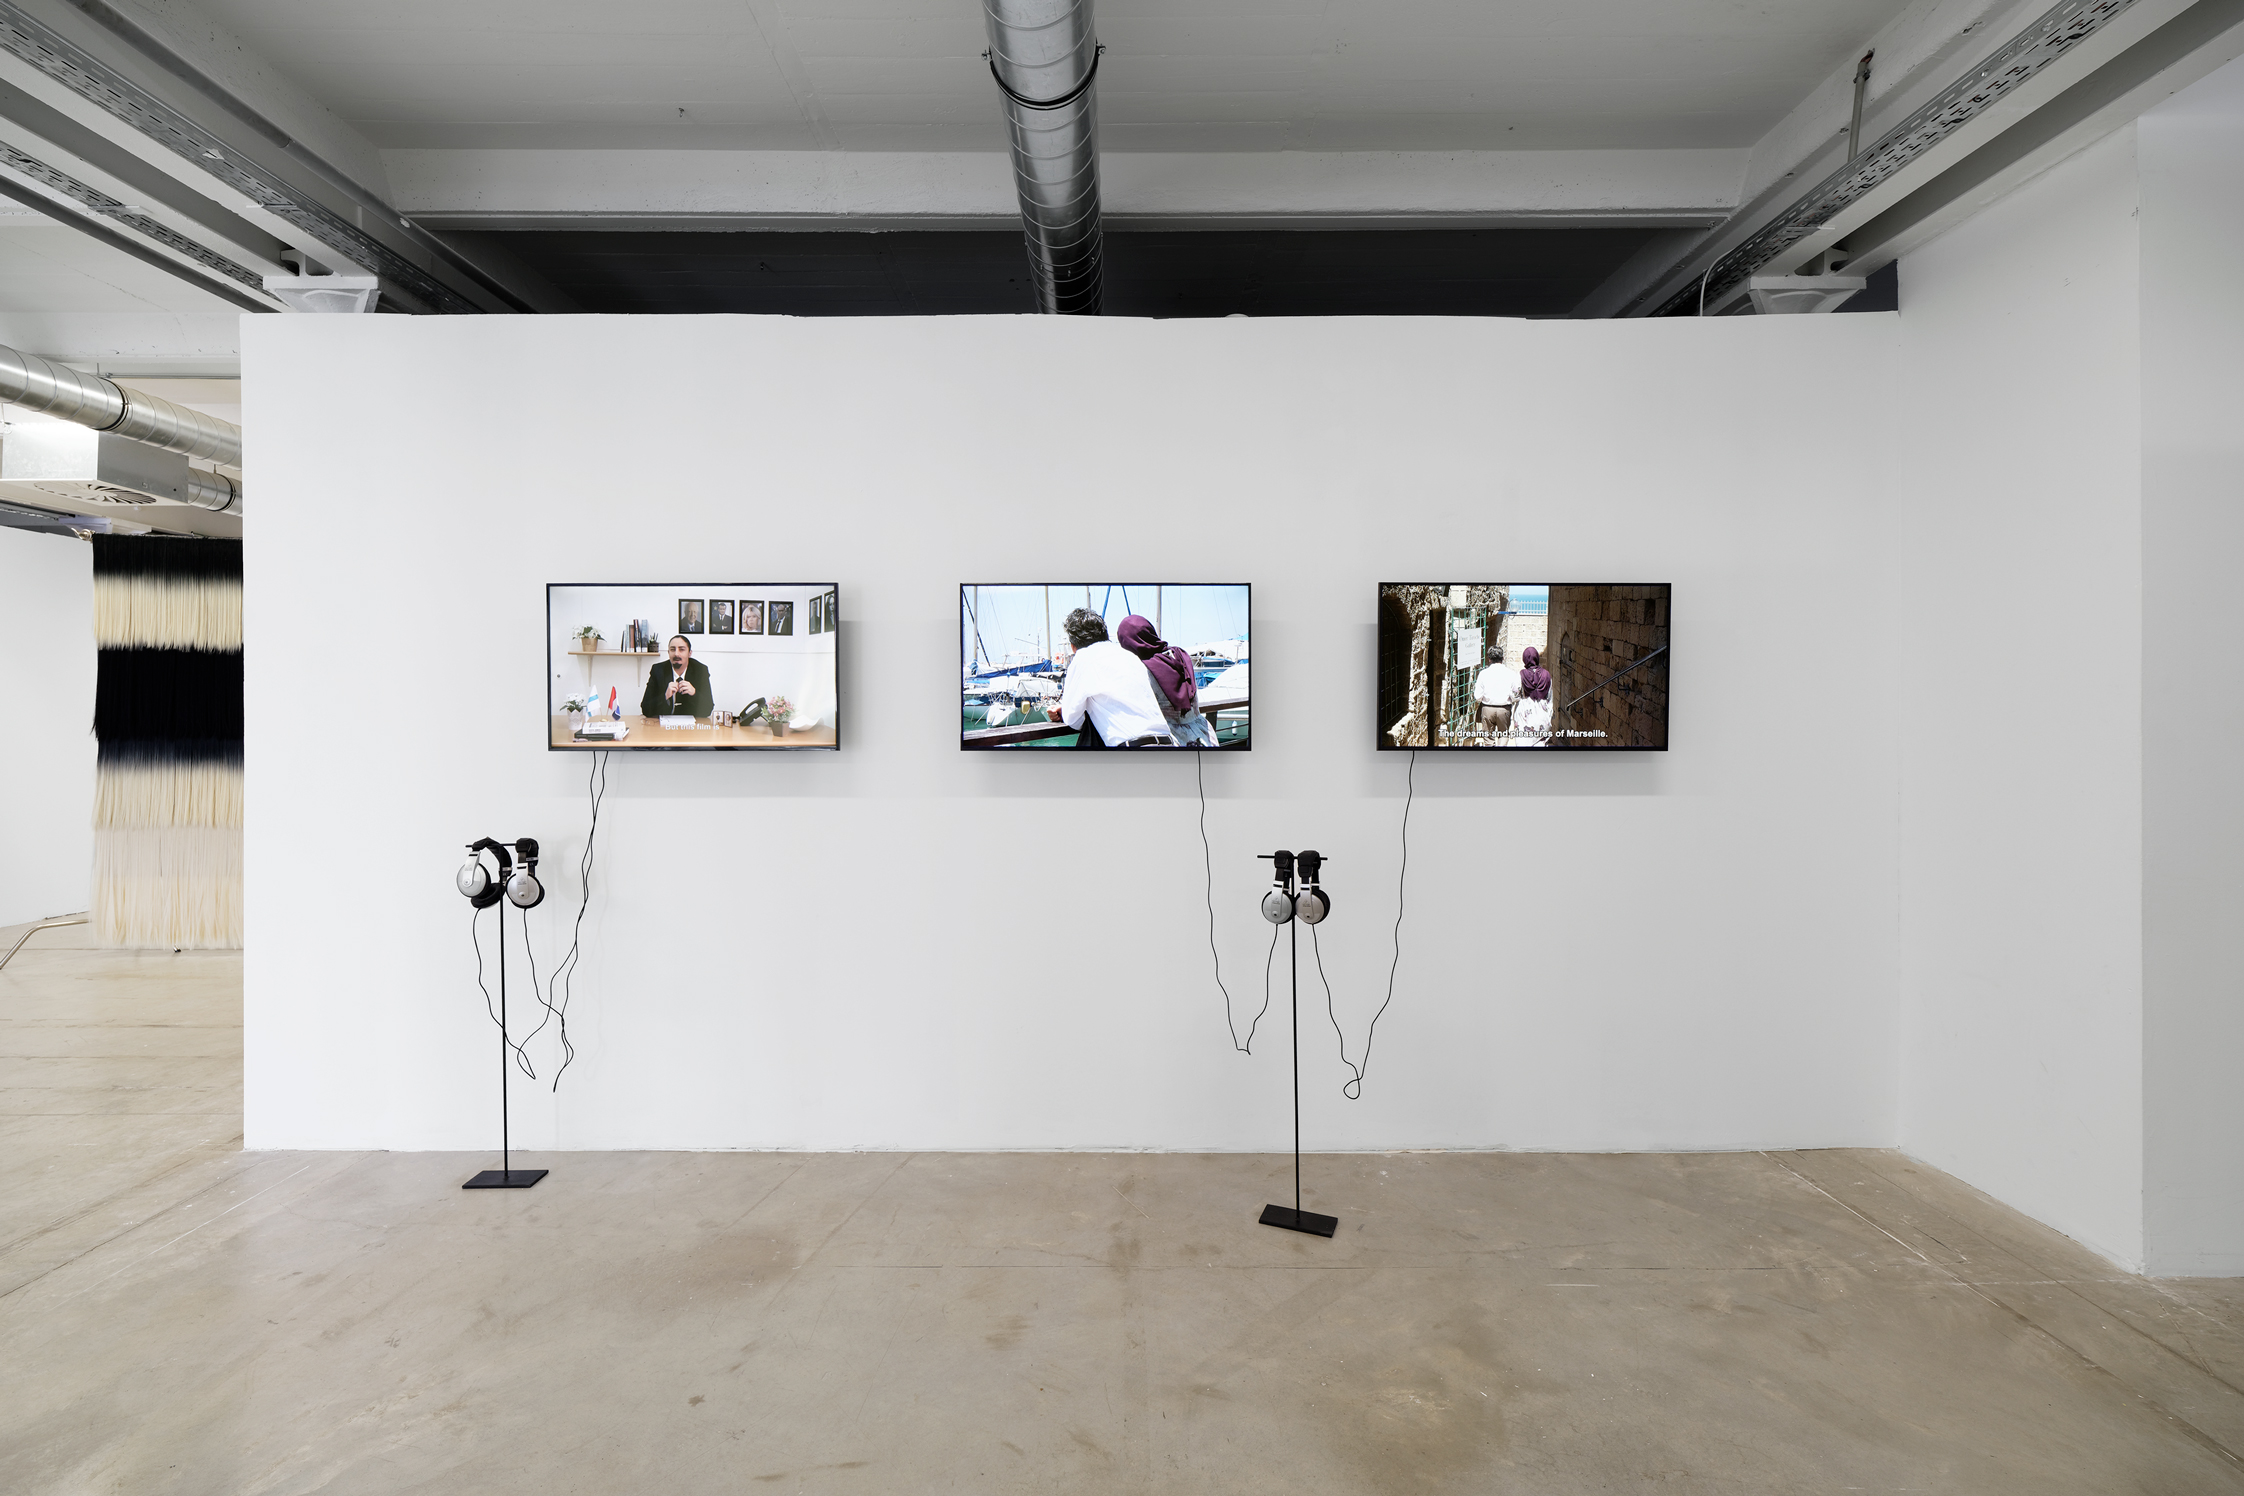 Ruti Sela, Roee Rosen, et les étudiant.e.s du HaMidrasha College of Art, Marseille Jamilla, 2018, vidéos, travail en cours. Courtesy des artistes et des étudiant.e.s. Production : Triangle France - Astérides, The Artis Grant Program et SCIC Friche la Belle de Mai. © Aurélien Mole